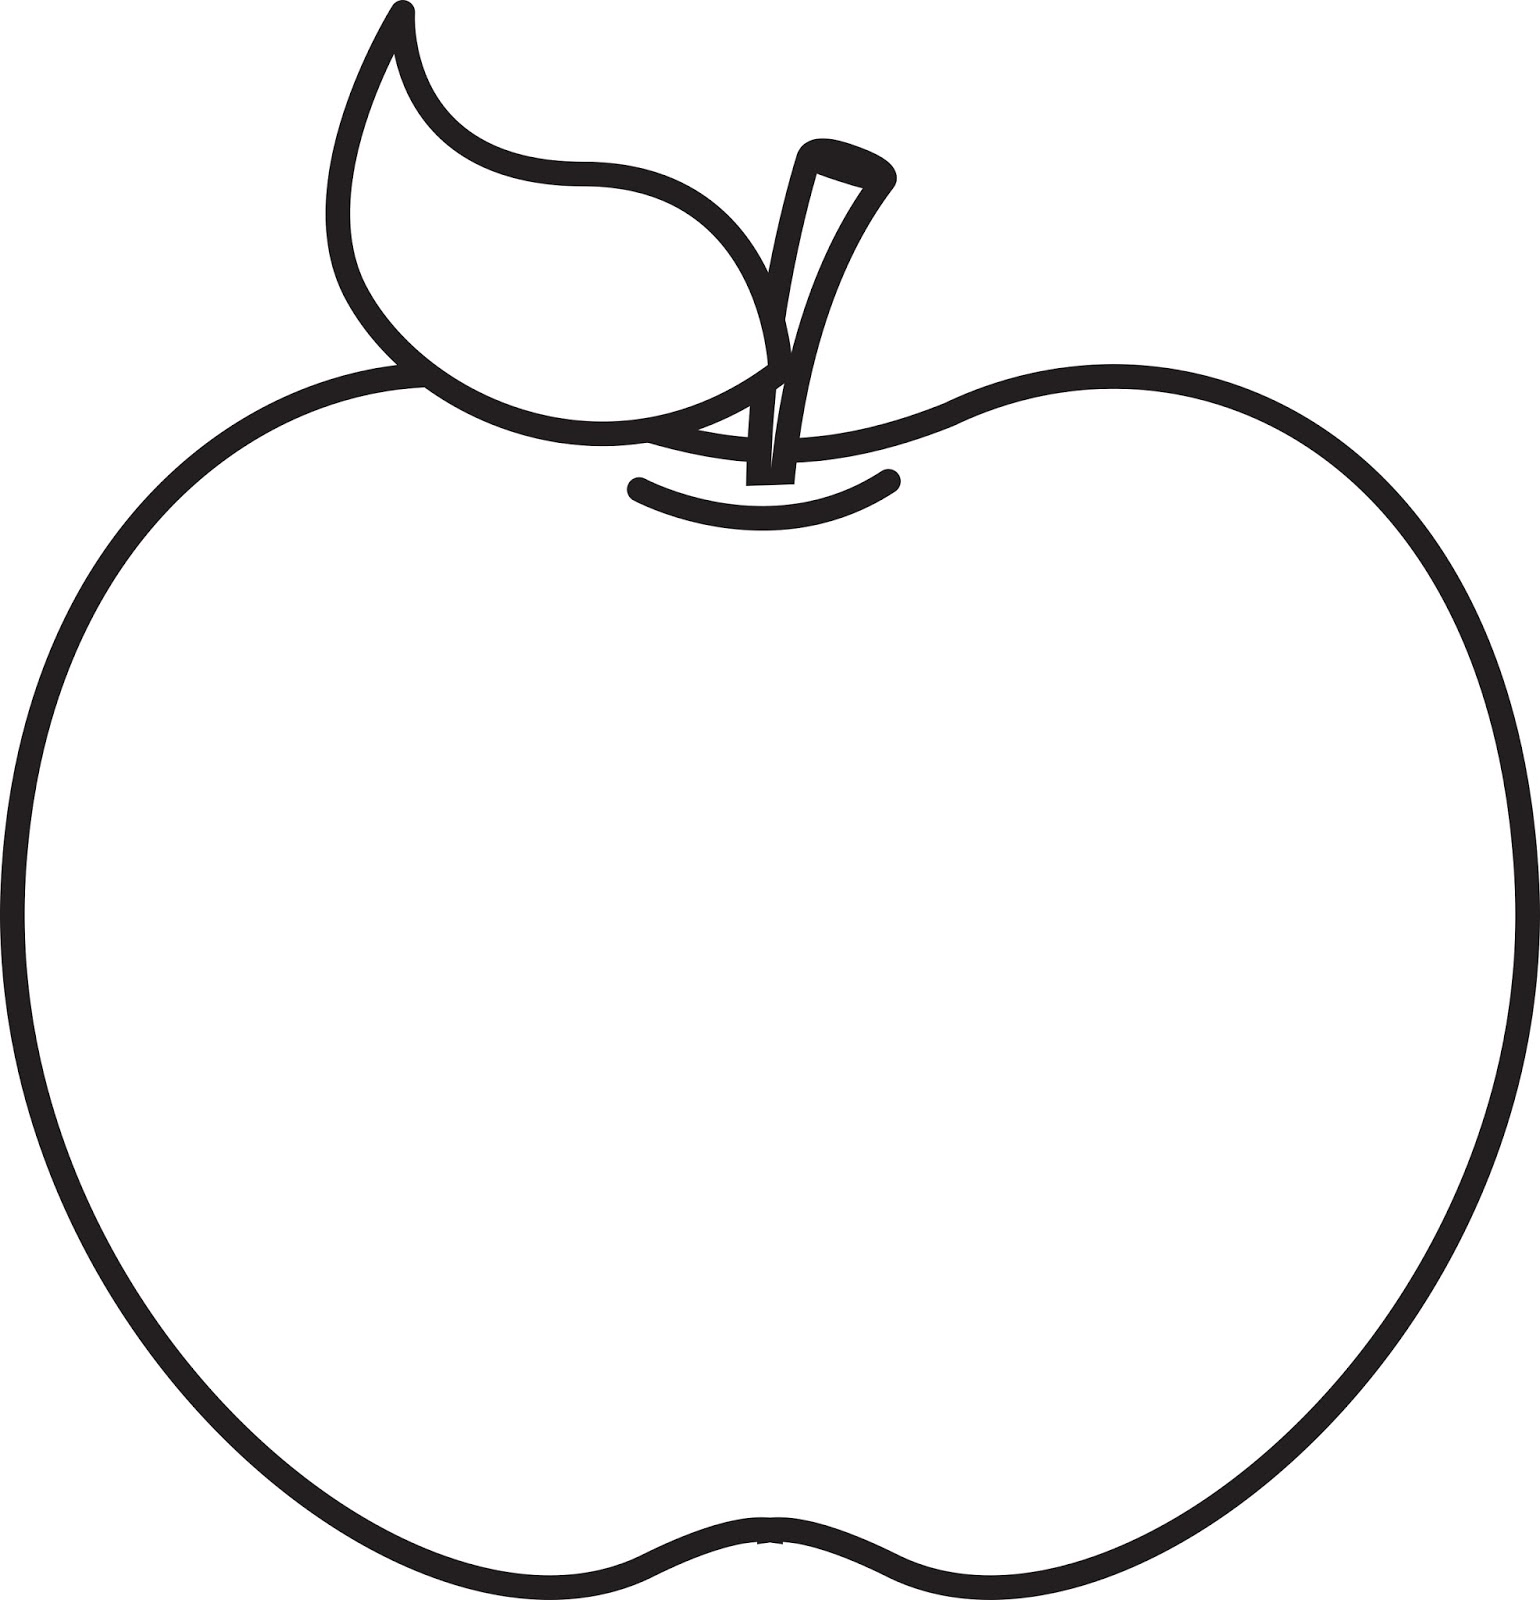 1540x1600 Apple Black And White Apple Clip Art Black And White 2 2